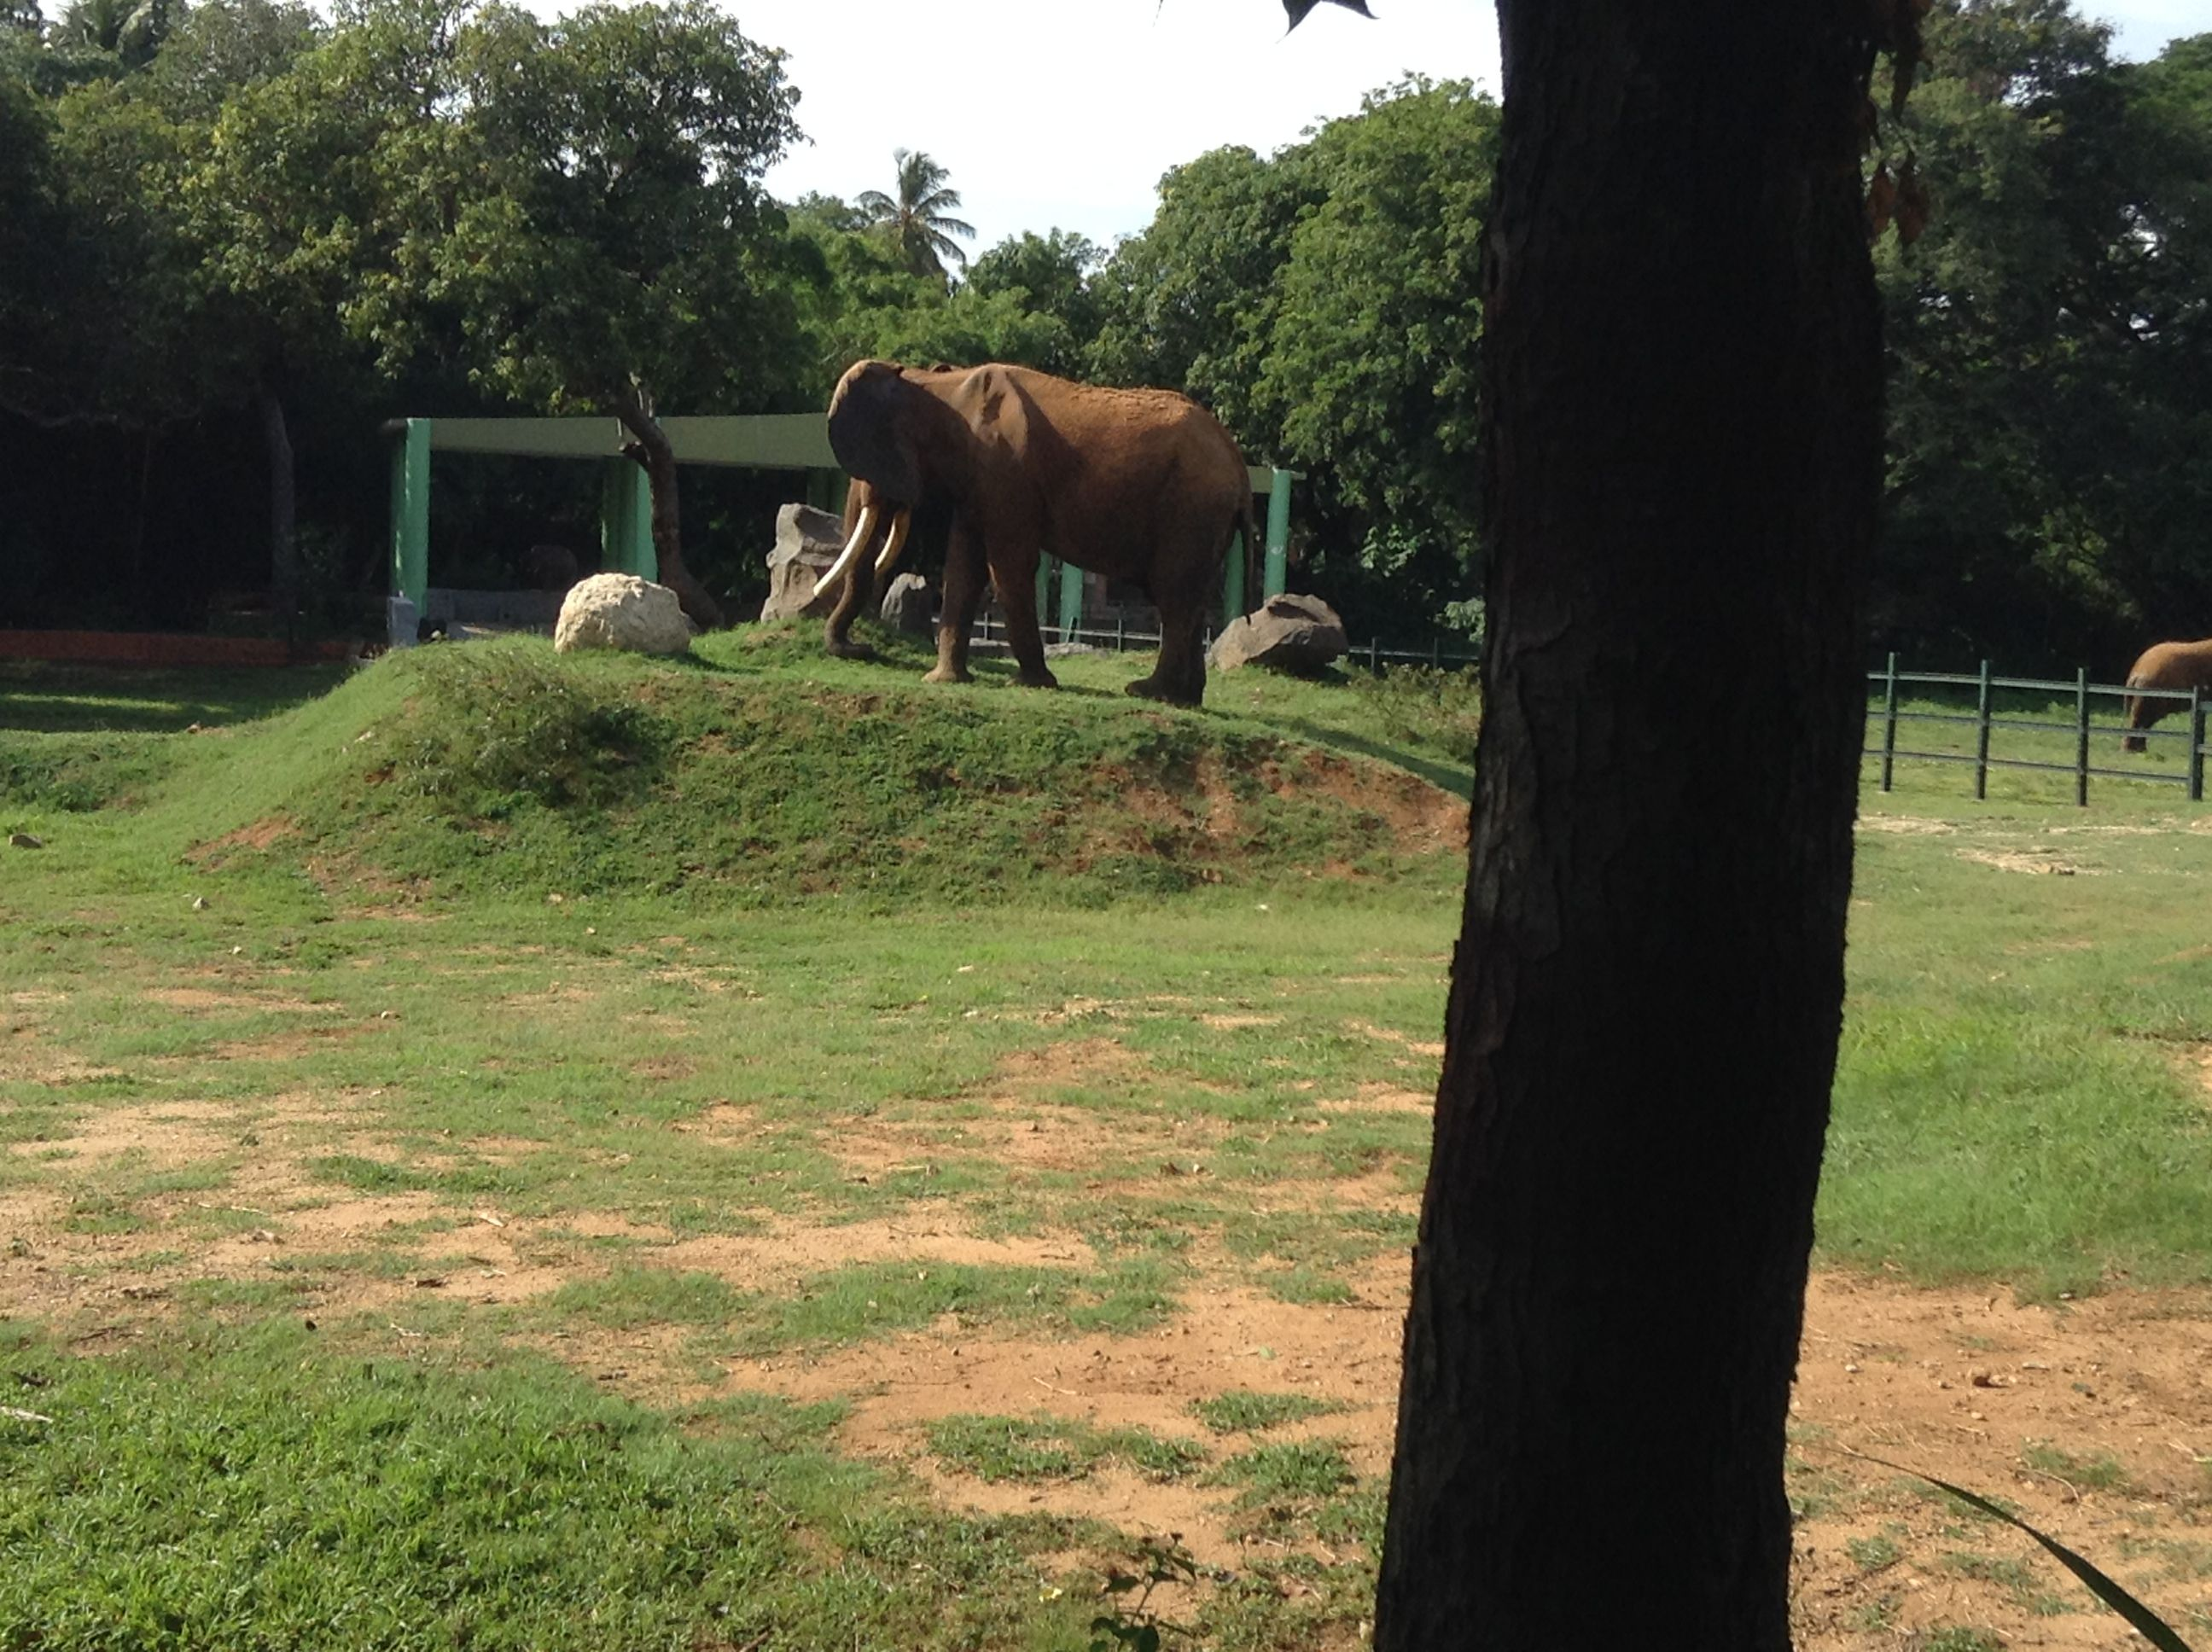 69d2ba1b84a72b8d0d1039e1efe44a39 - Mysore Zoo Sri Chamarajendra Zoological Gardens